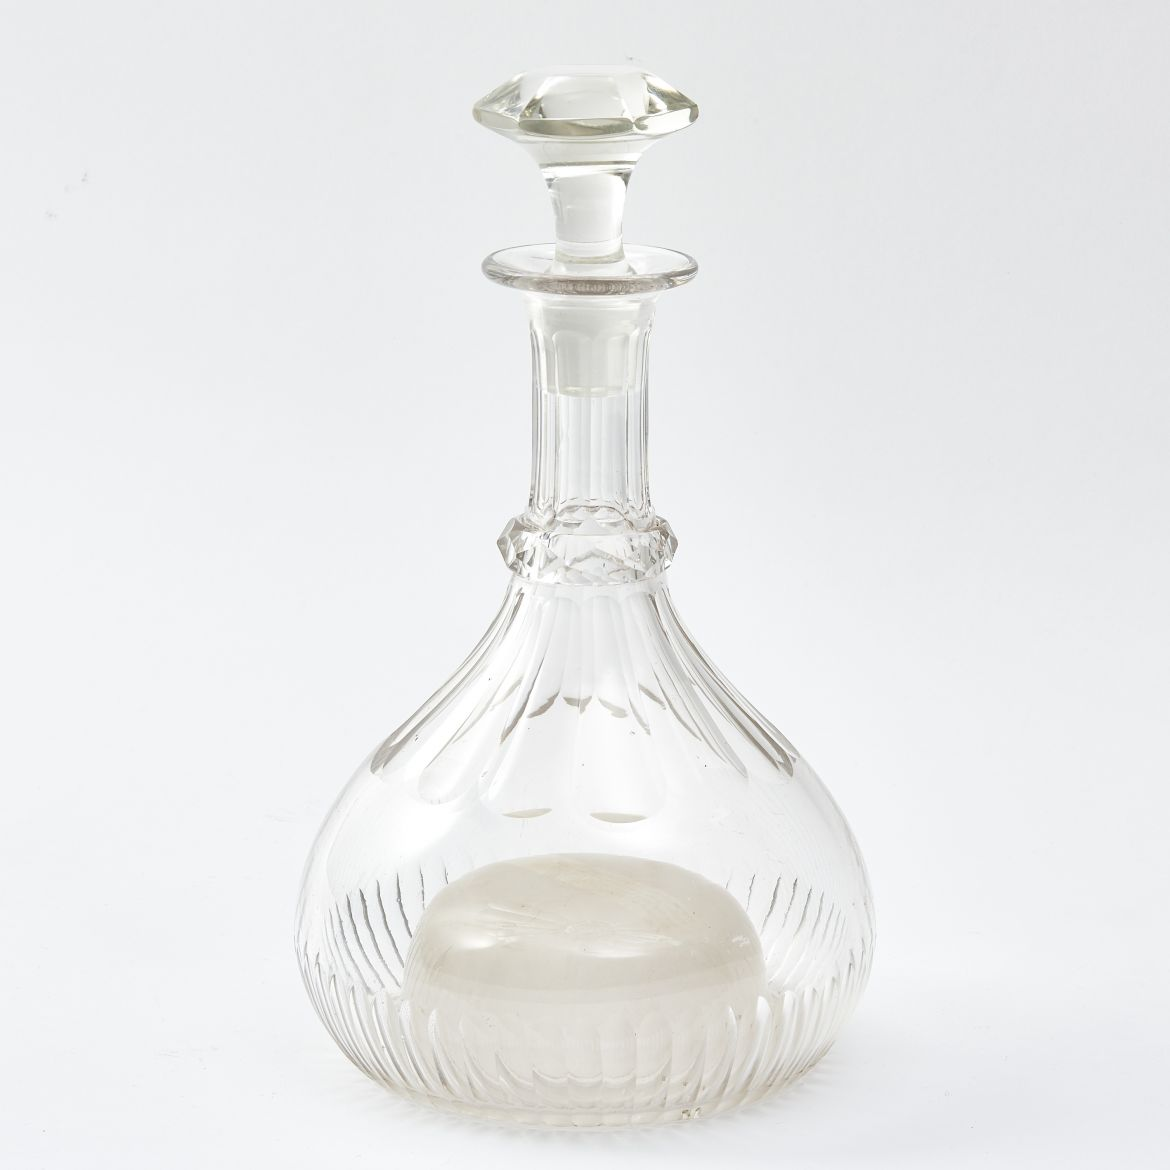 Unusual Victorian Decanter